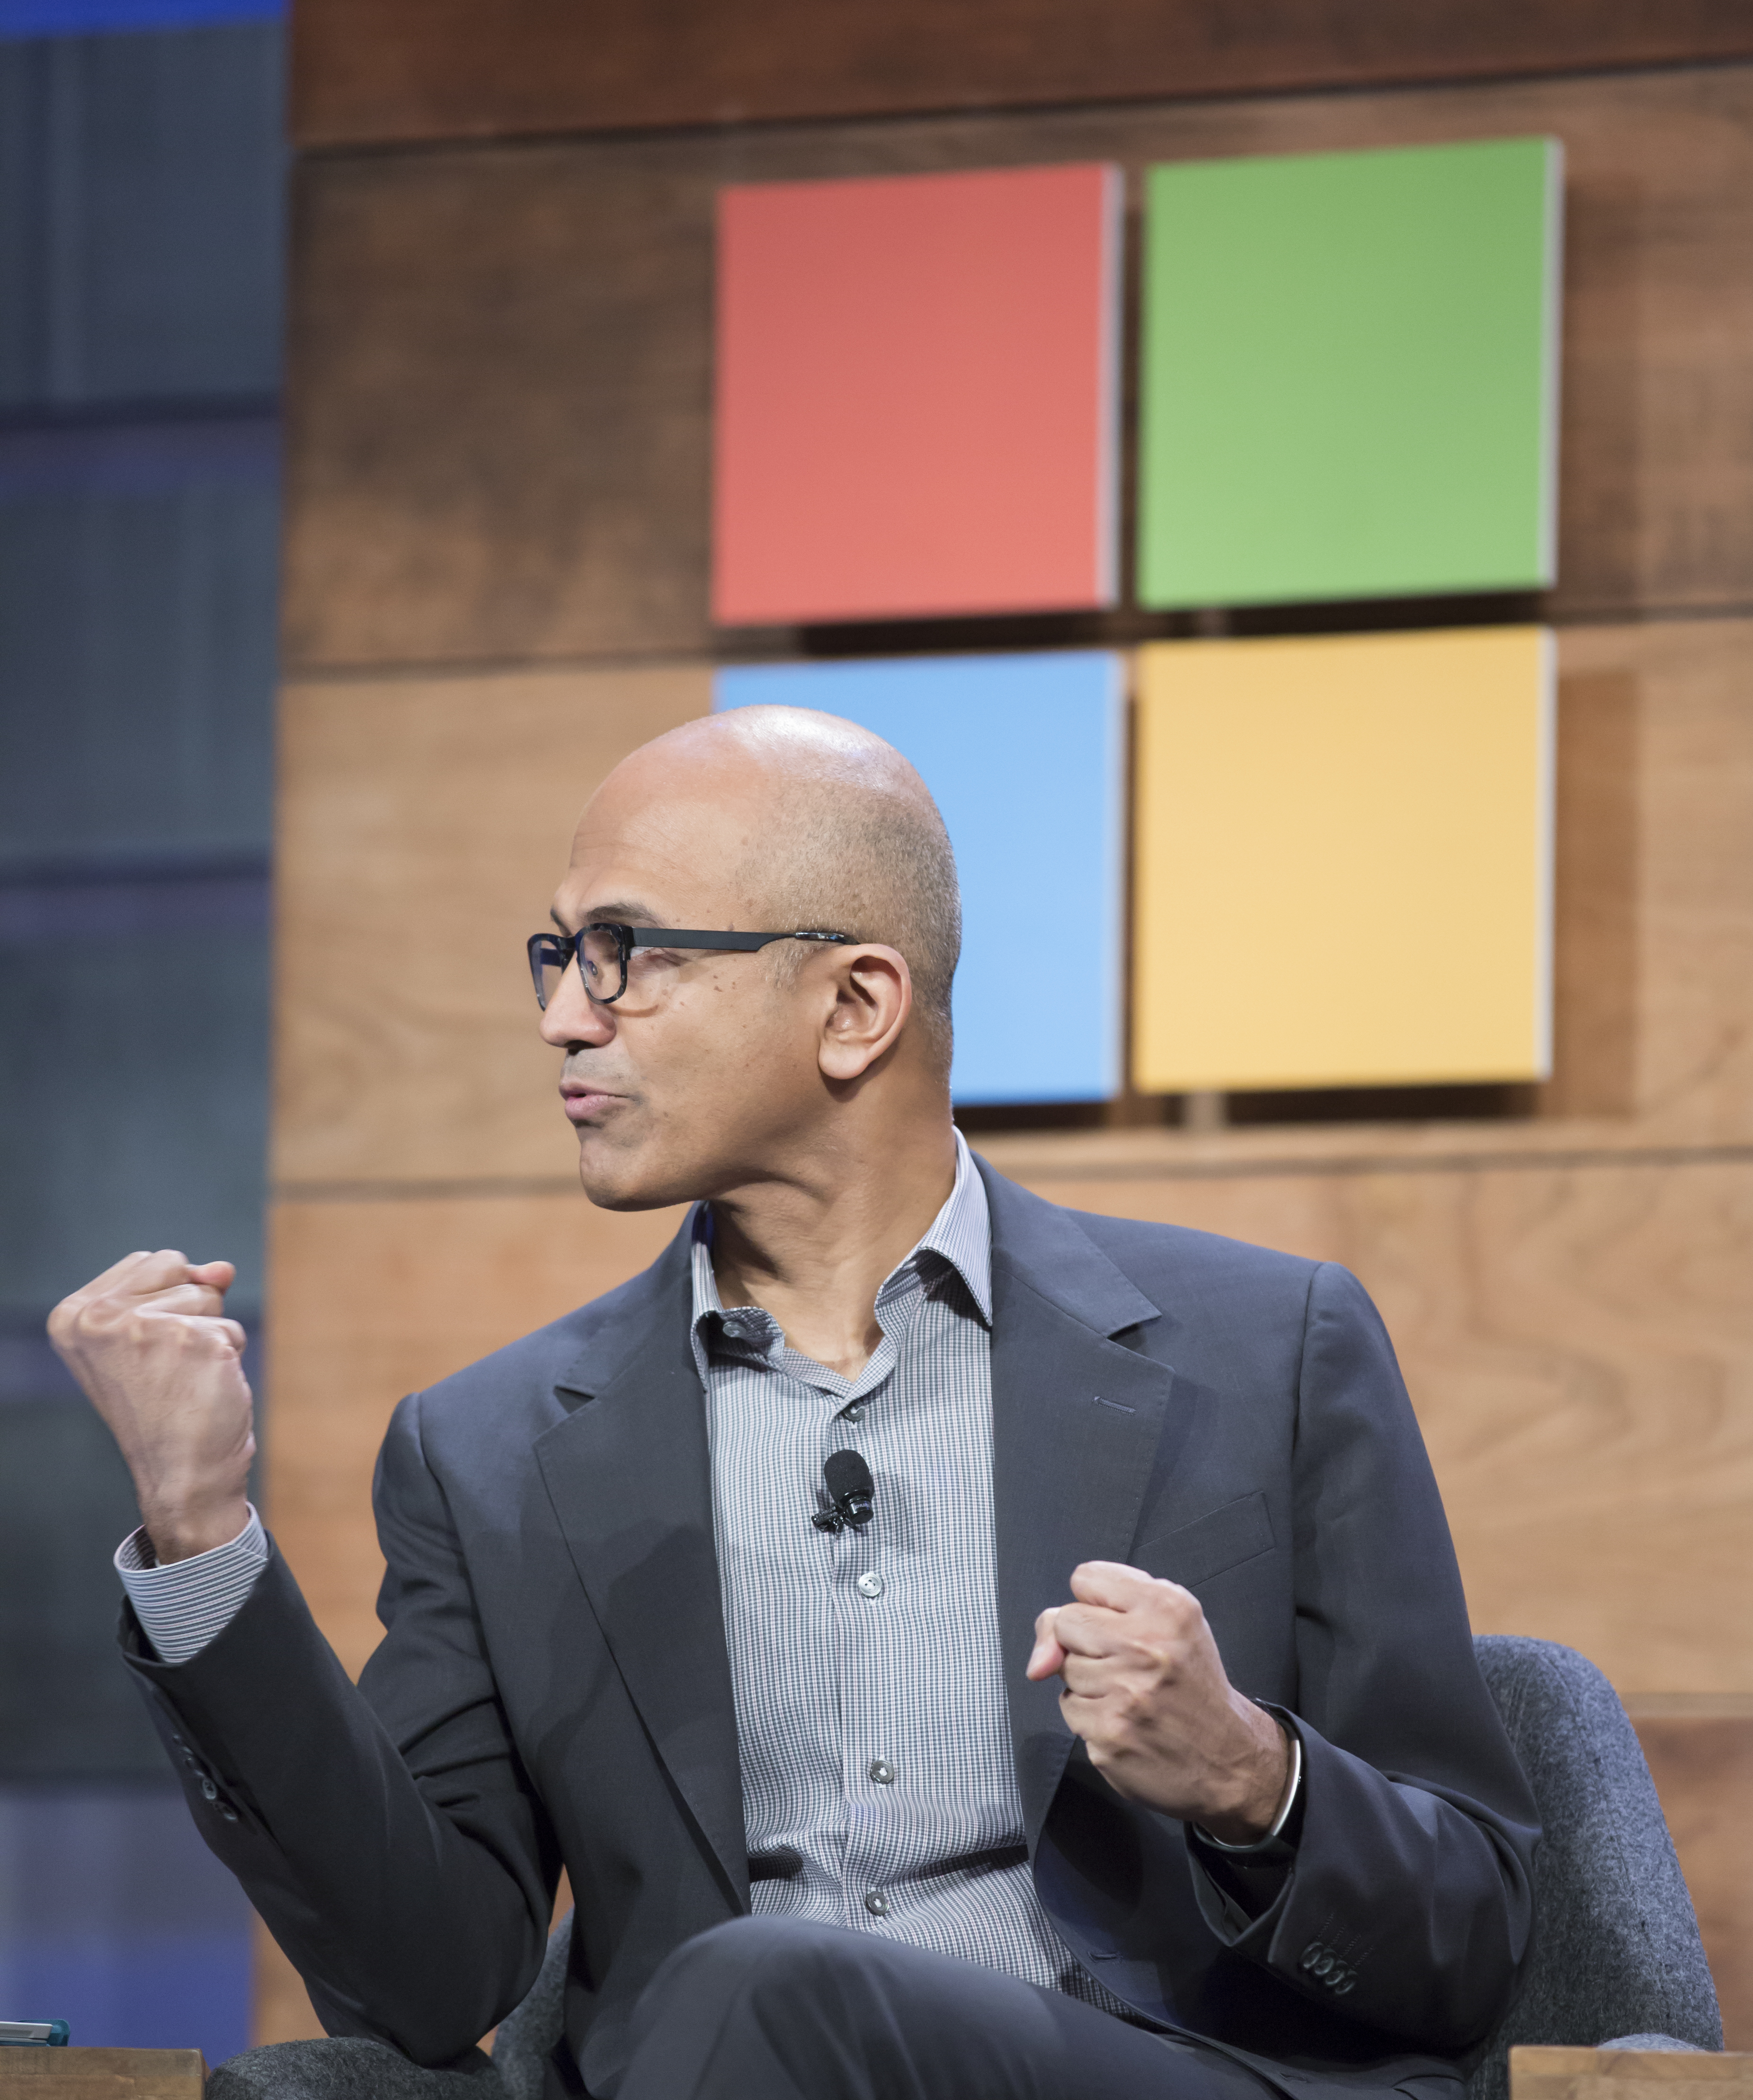 Why Microsoft stock just hit an all-time high